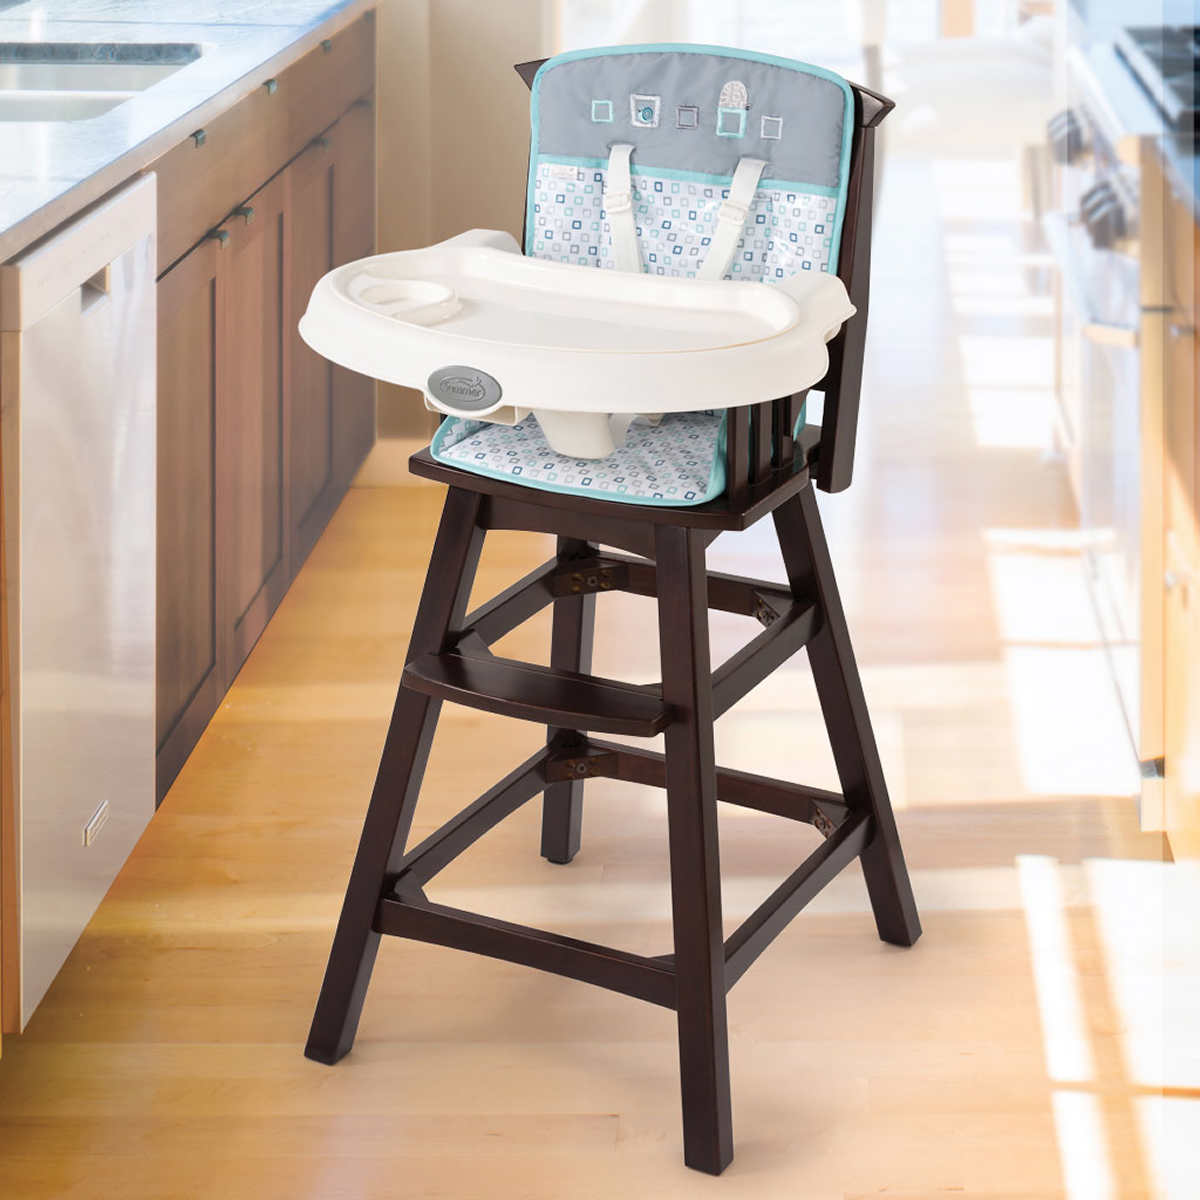 Graco meal time high chair - Member Only Item